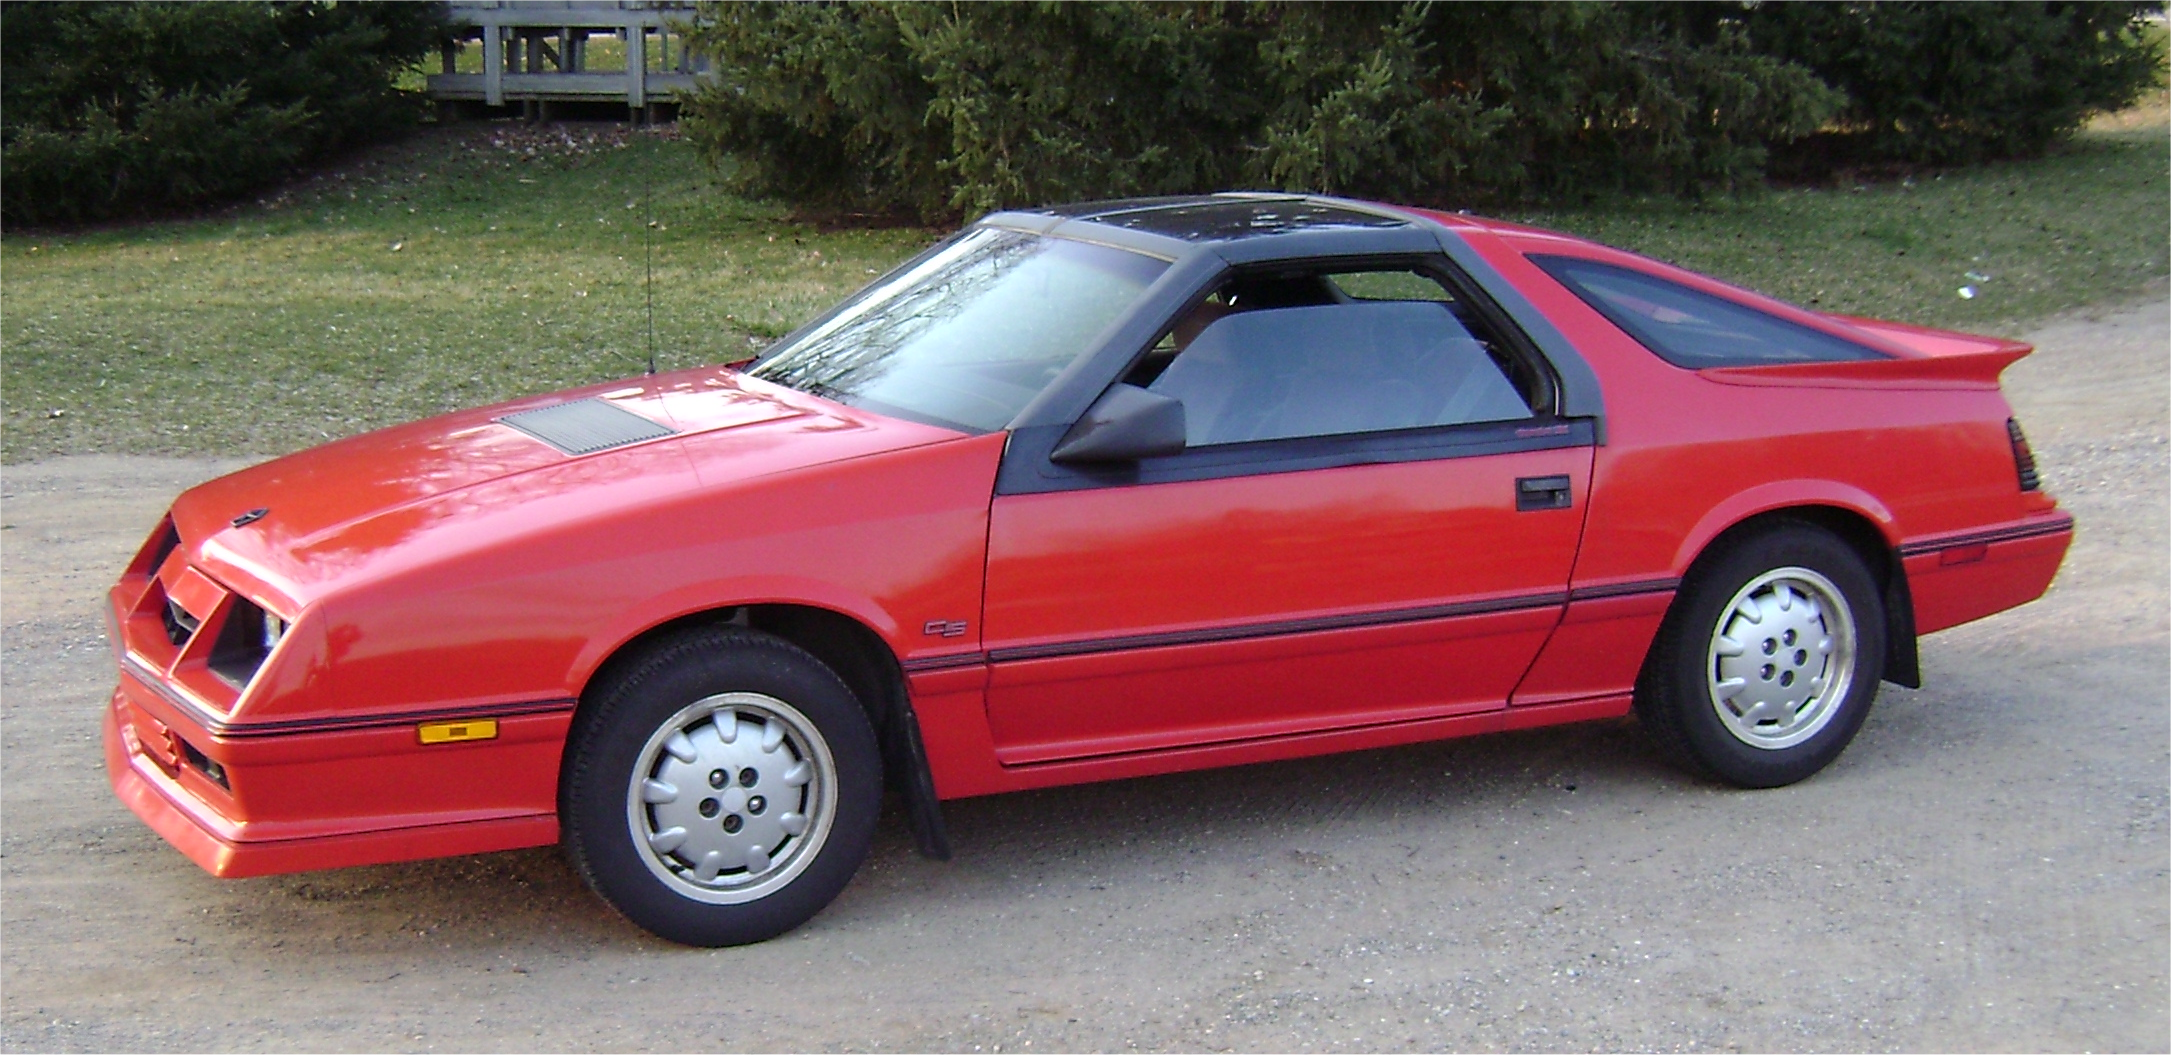 Dodge Daytona 1988 #12